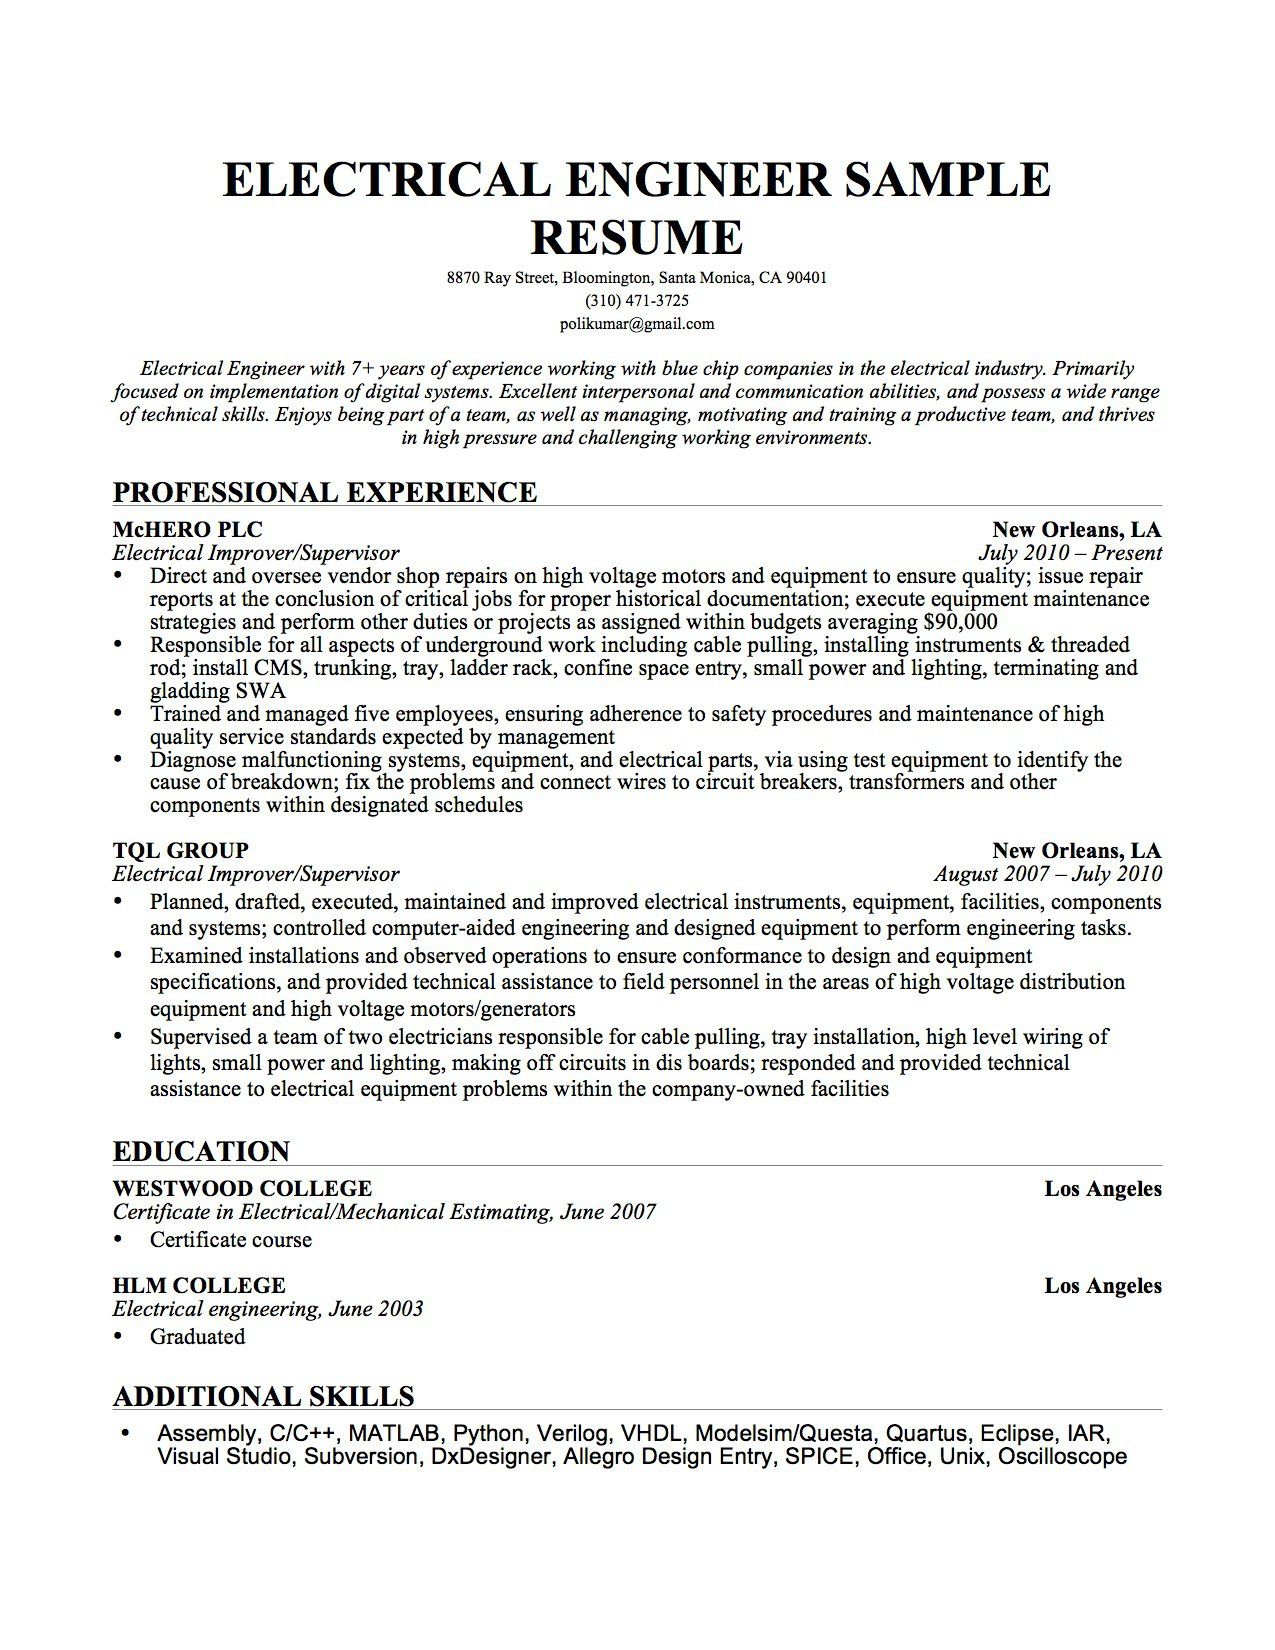 Computer Engineer Resume Engineer Sample Resume Equipment Fixed Biomedical Technician Cover